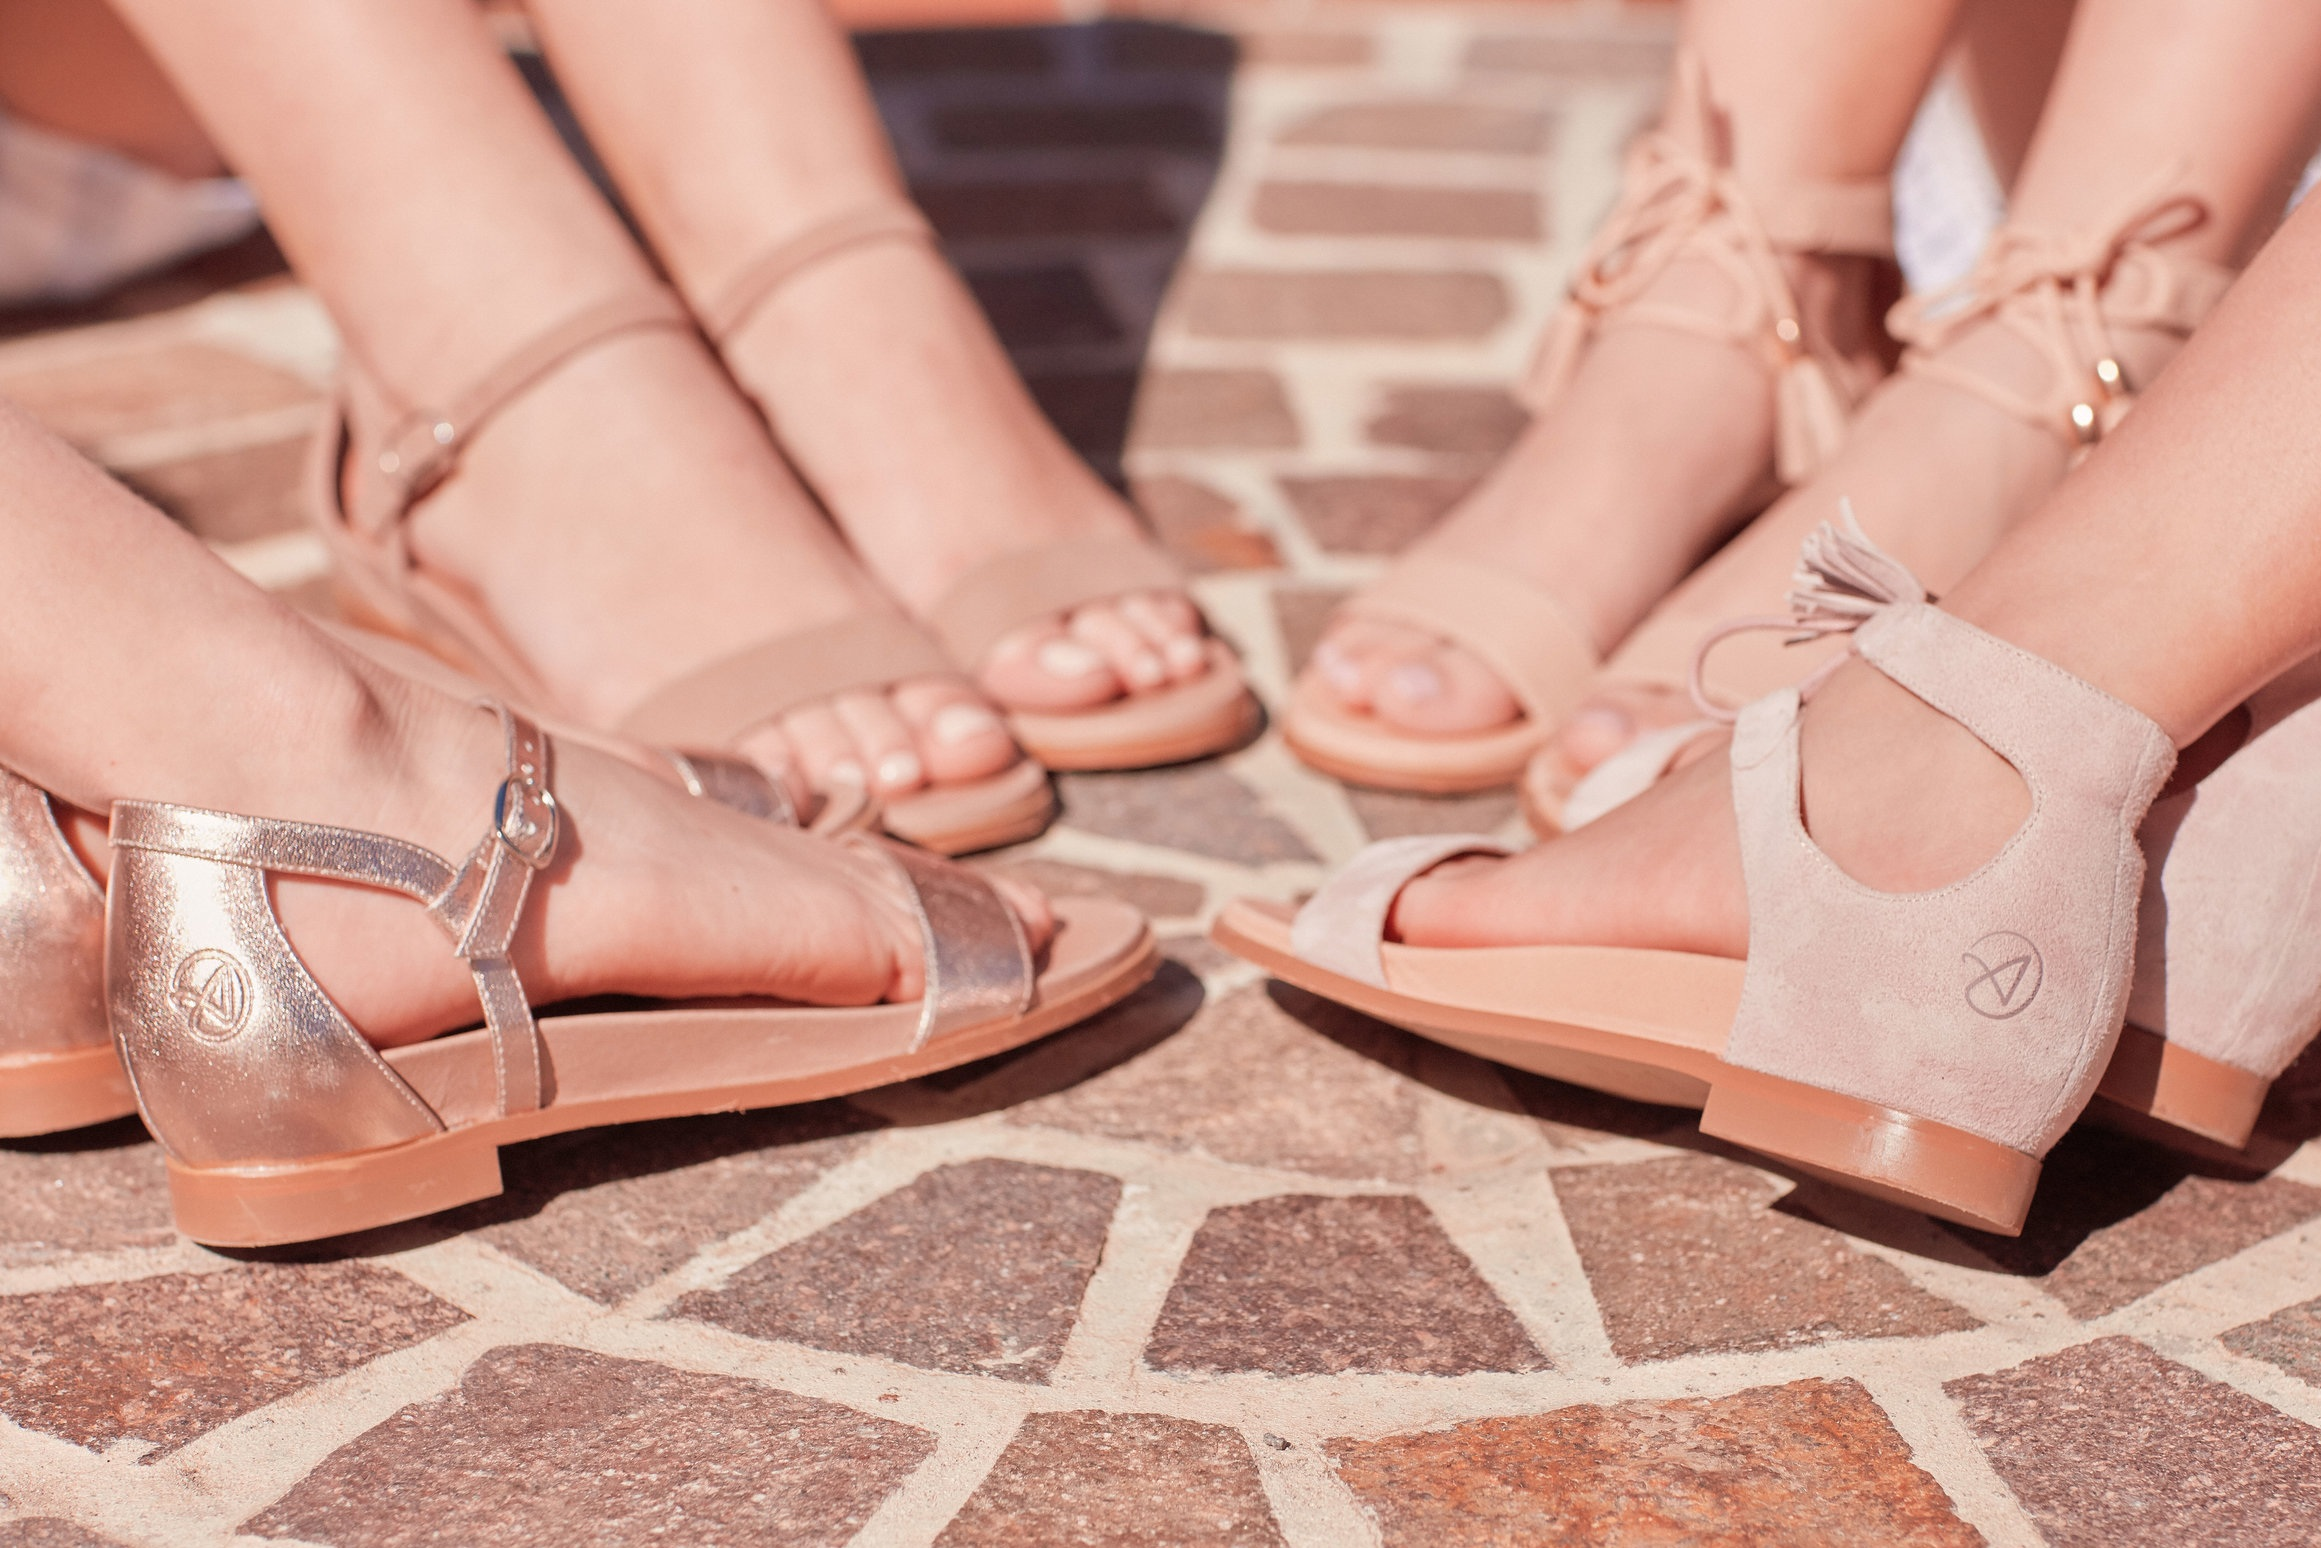 Aneara Sandals! - We are very proud to be stockists of these amazing podiatry approved sandals for girls, teens and women with narrow feet!